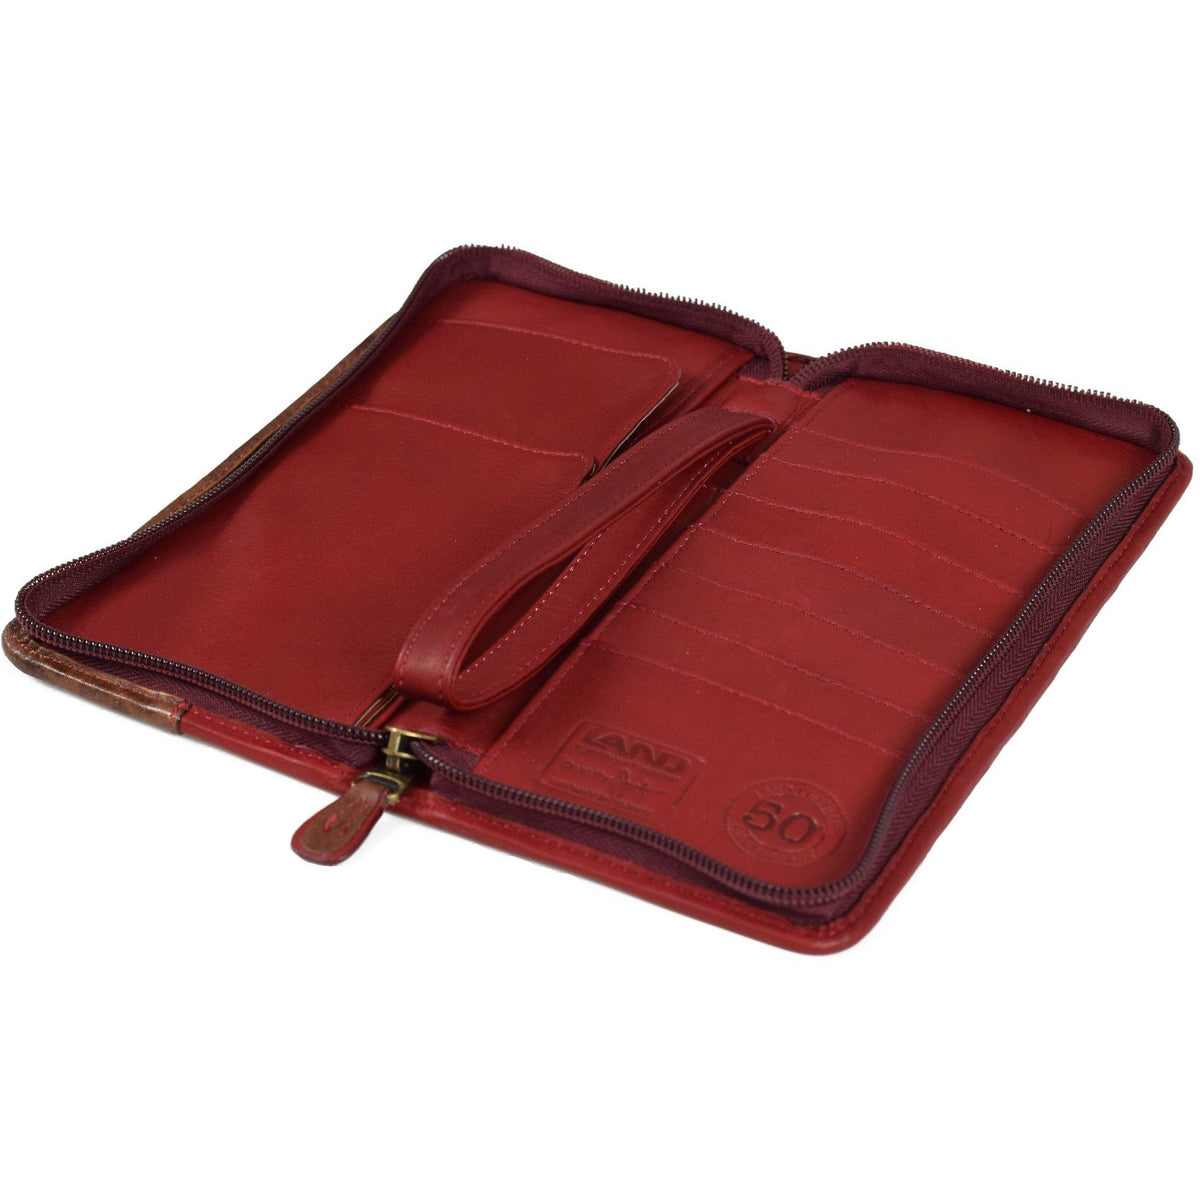 Anniversary Zip Around Travel Organizer, Travel Organizer | LAND Leather